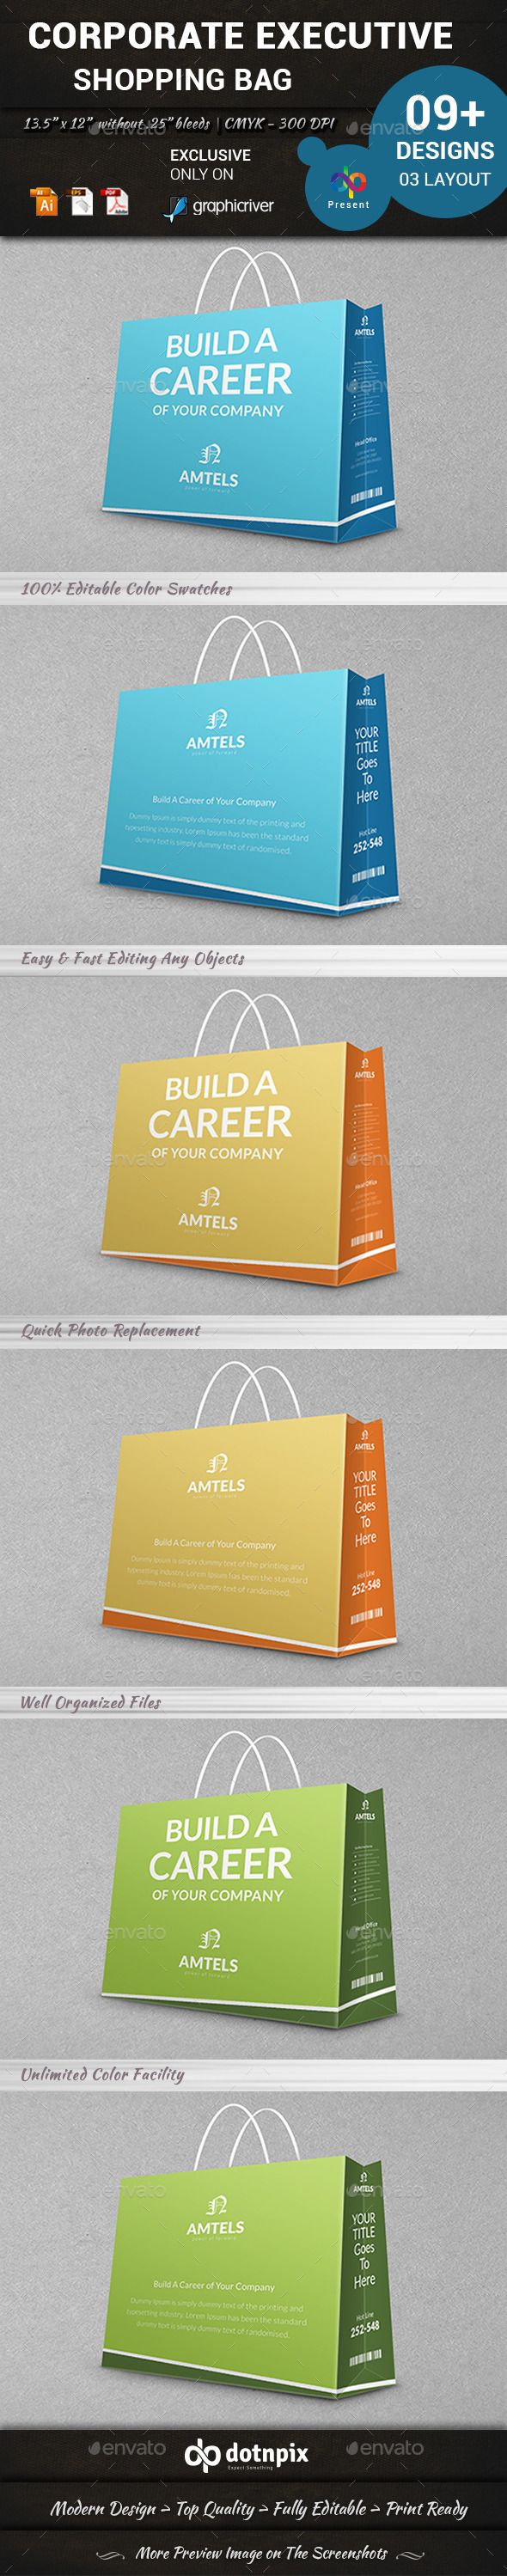 Corporate Executive Shopping Bag - #Packaging Print Templates Download here: https://graphicriver.net/item/corporate-executive-shopping-bag/10992029?ref=alena994